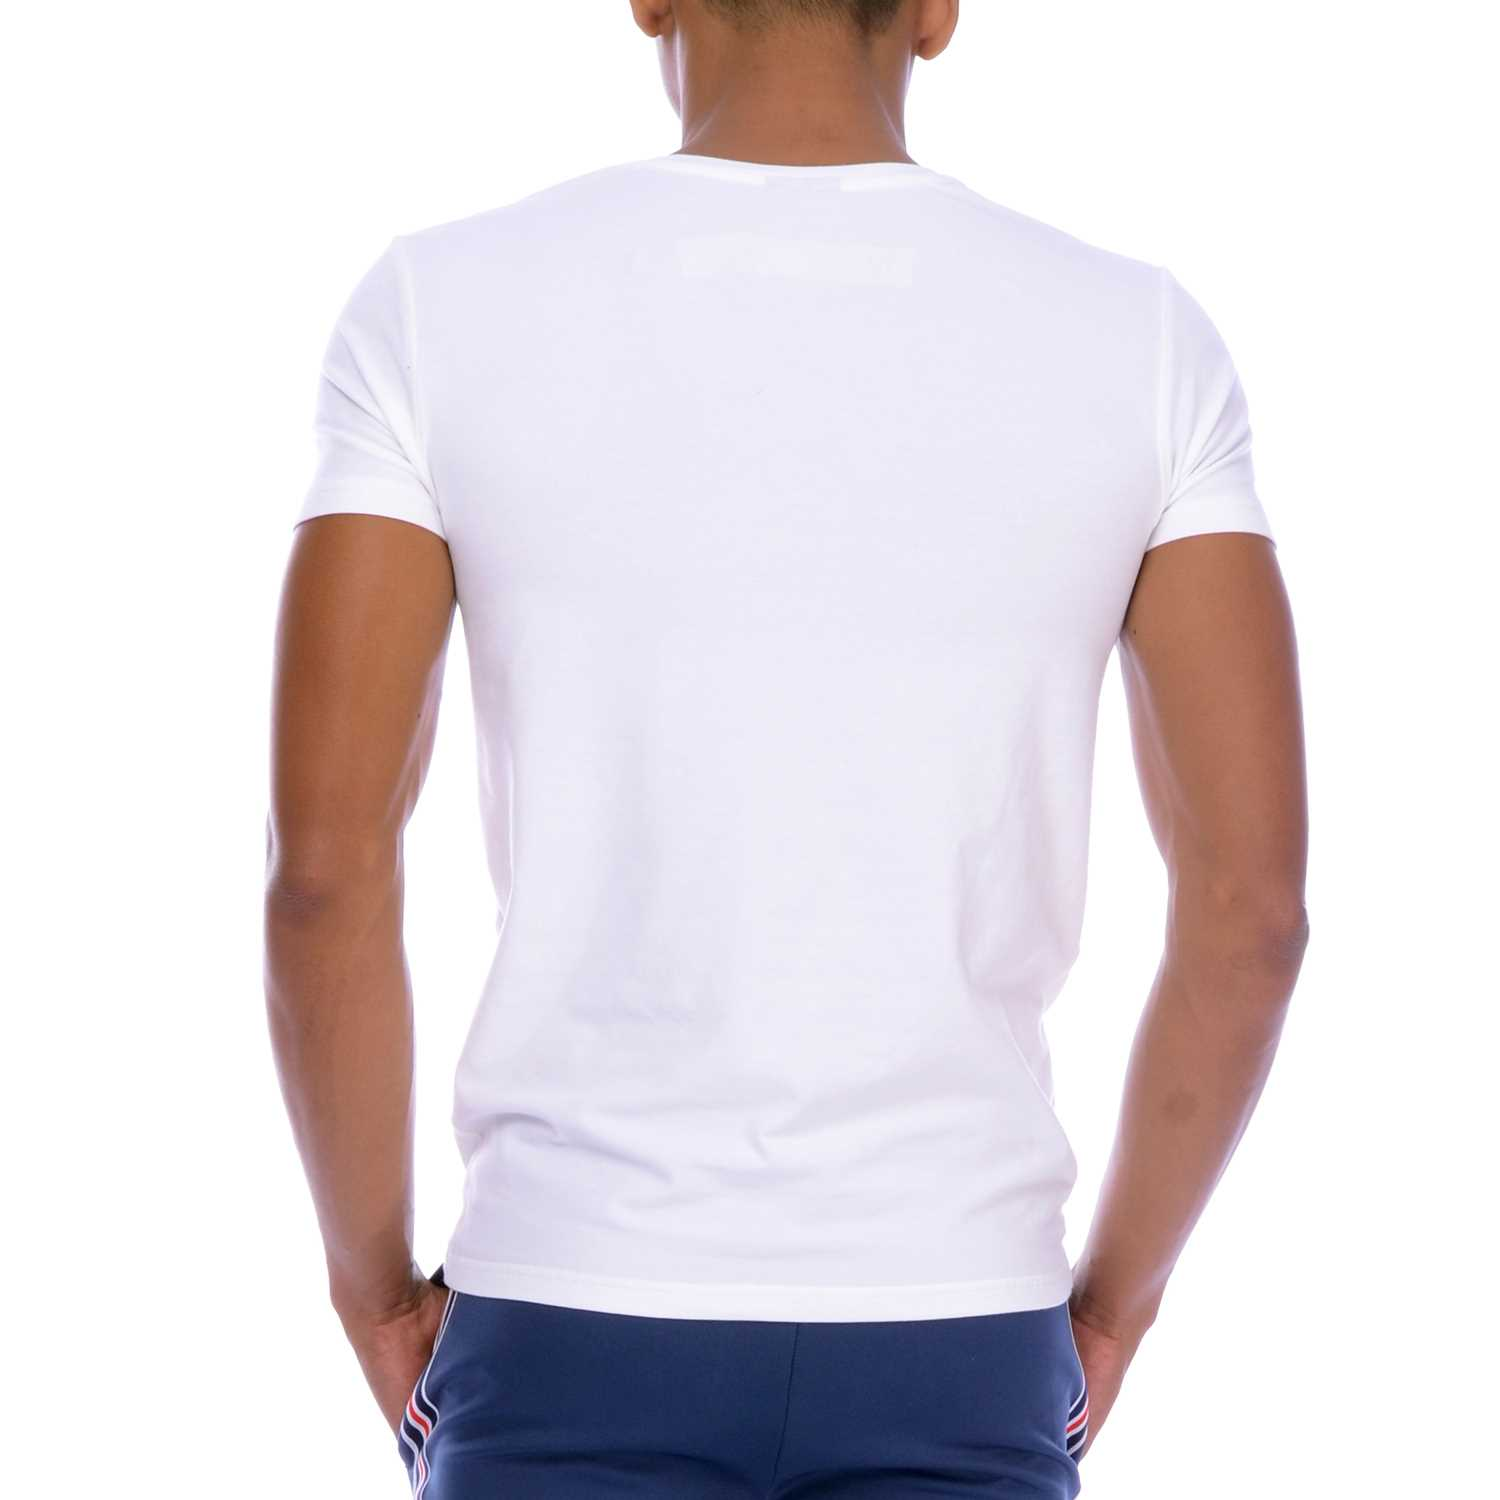 Body Wear Custom Fit V Neck Tee, 1626